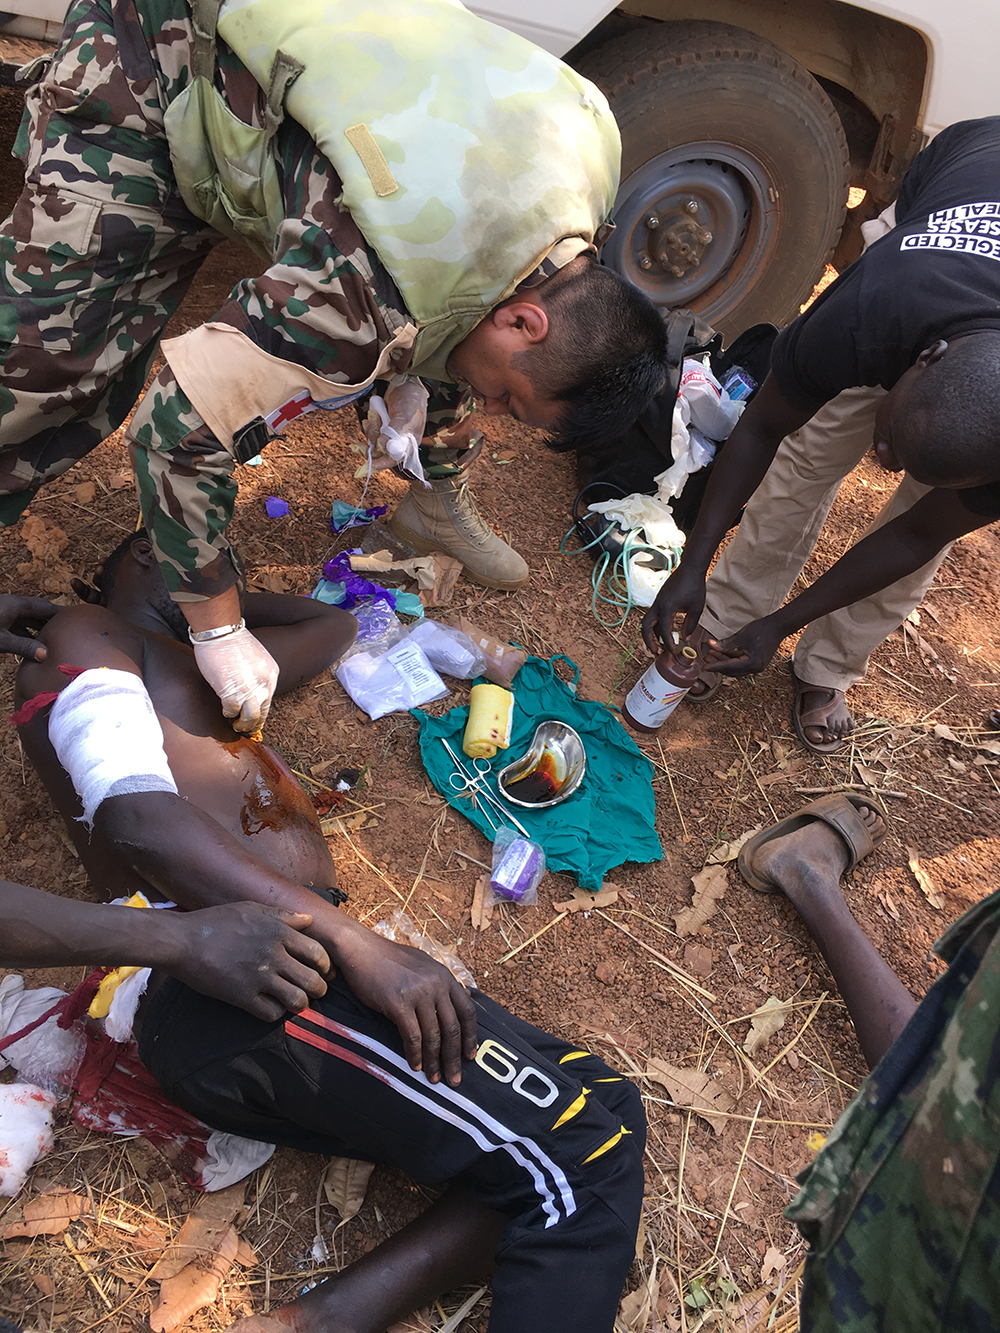 Wounded Civilians Rescued